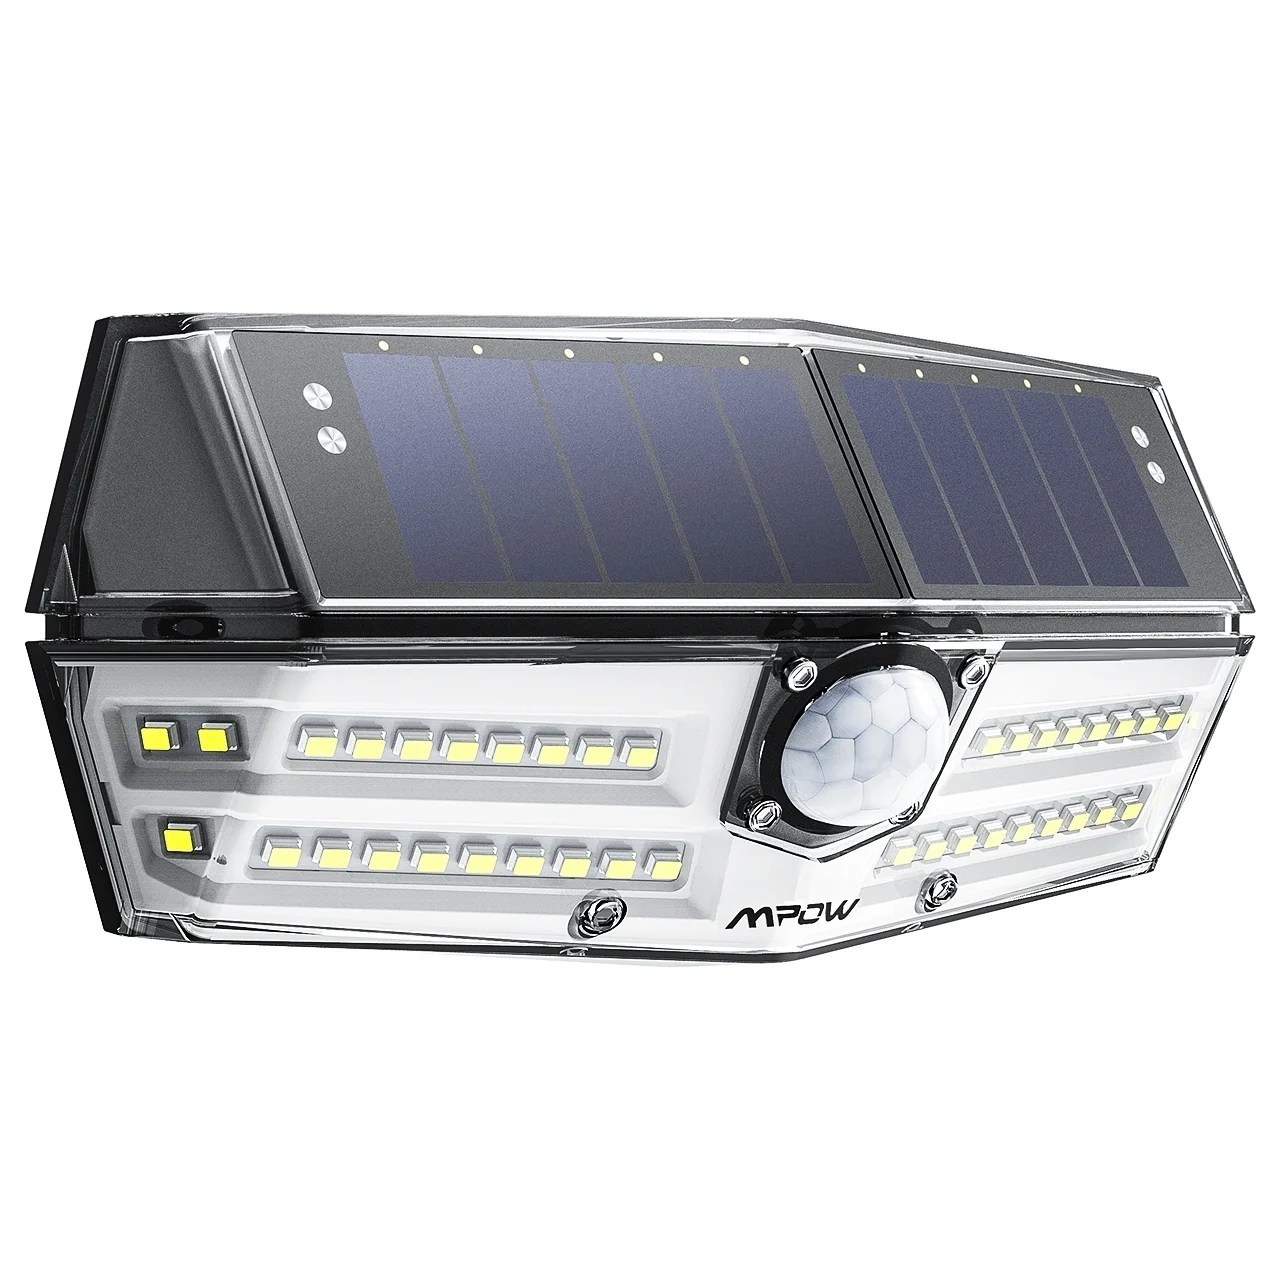 Led Solar Mpow Premium 40 Led Solar Lights Outdoor Motion Sensor Lights With 24 5 High Efficient Solar Panel